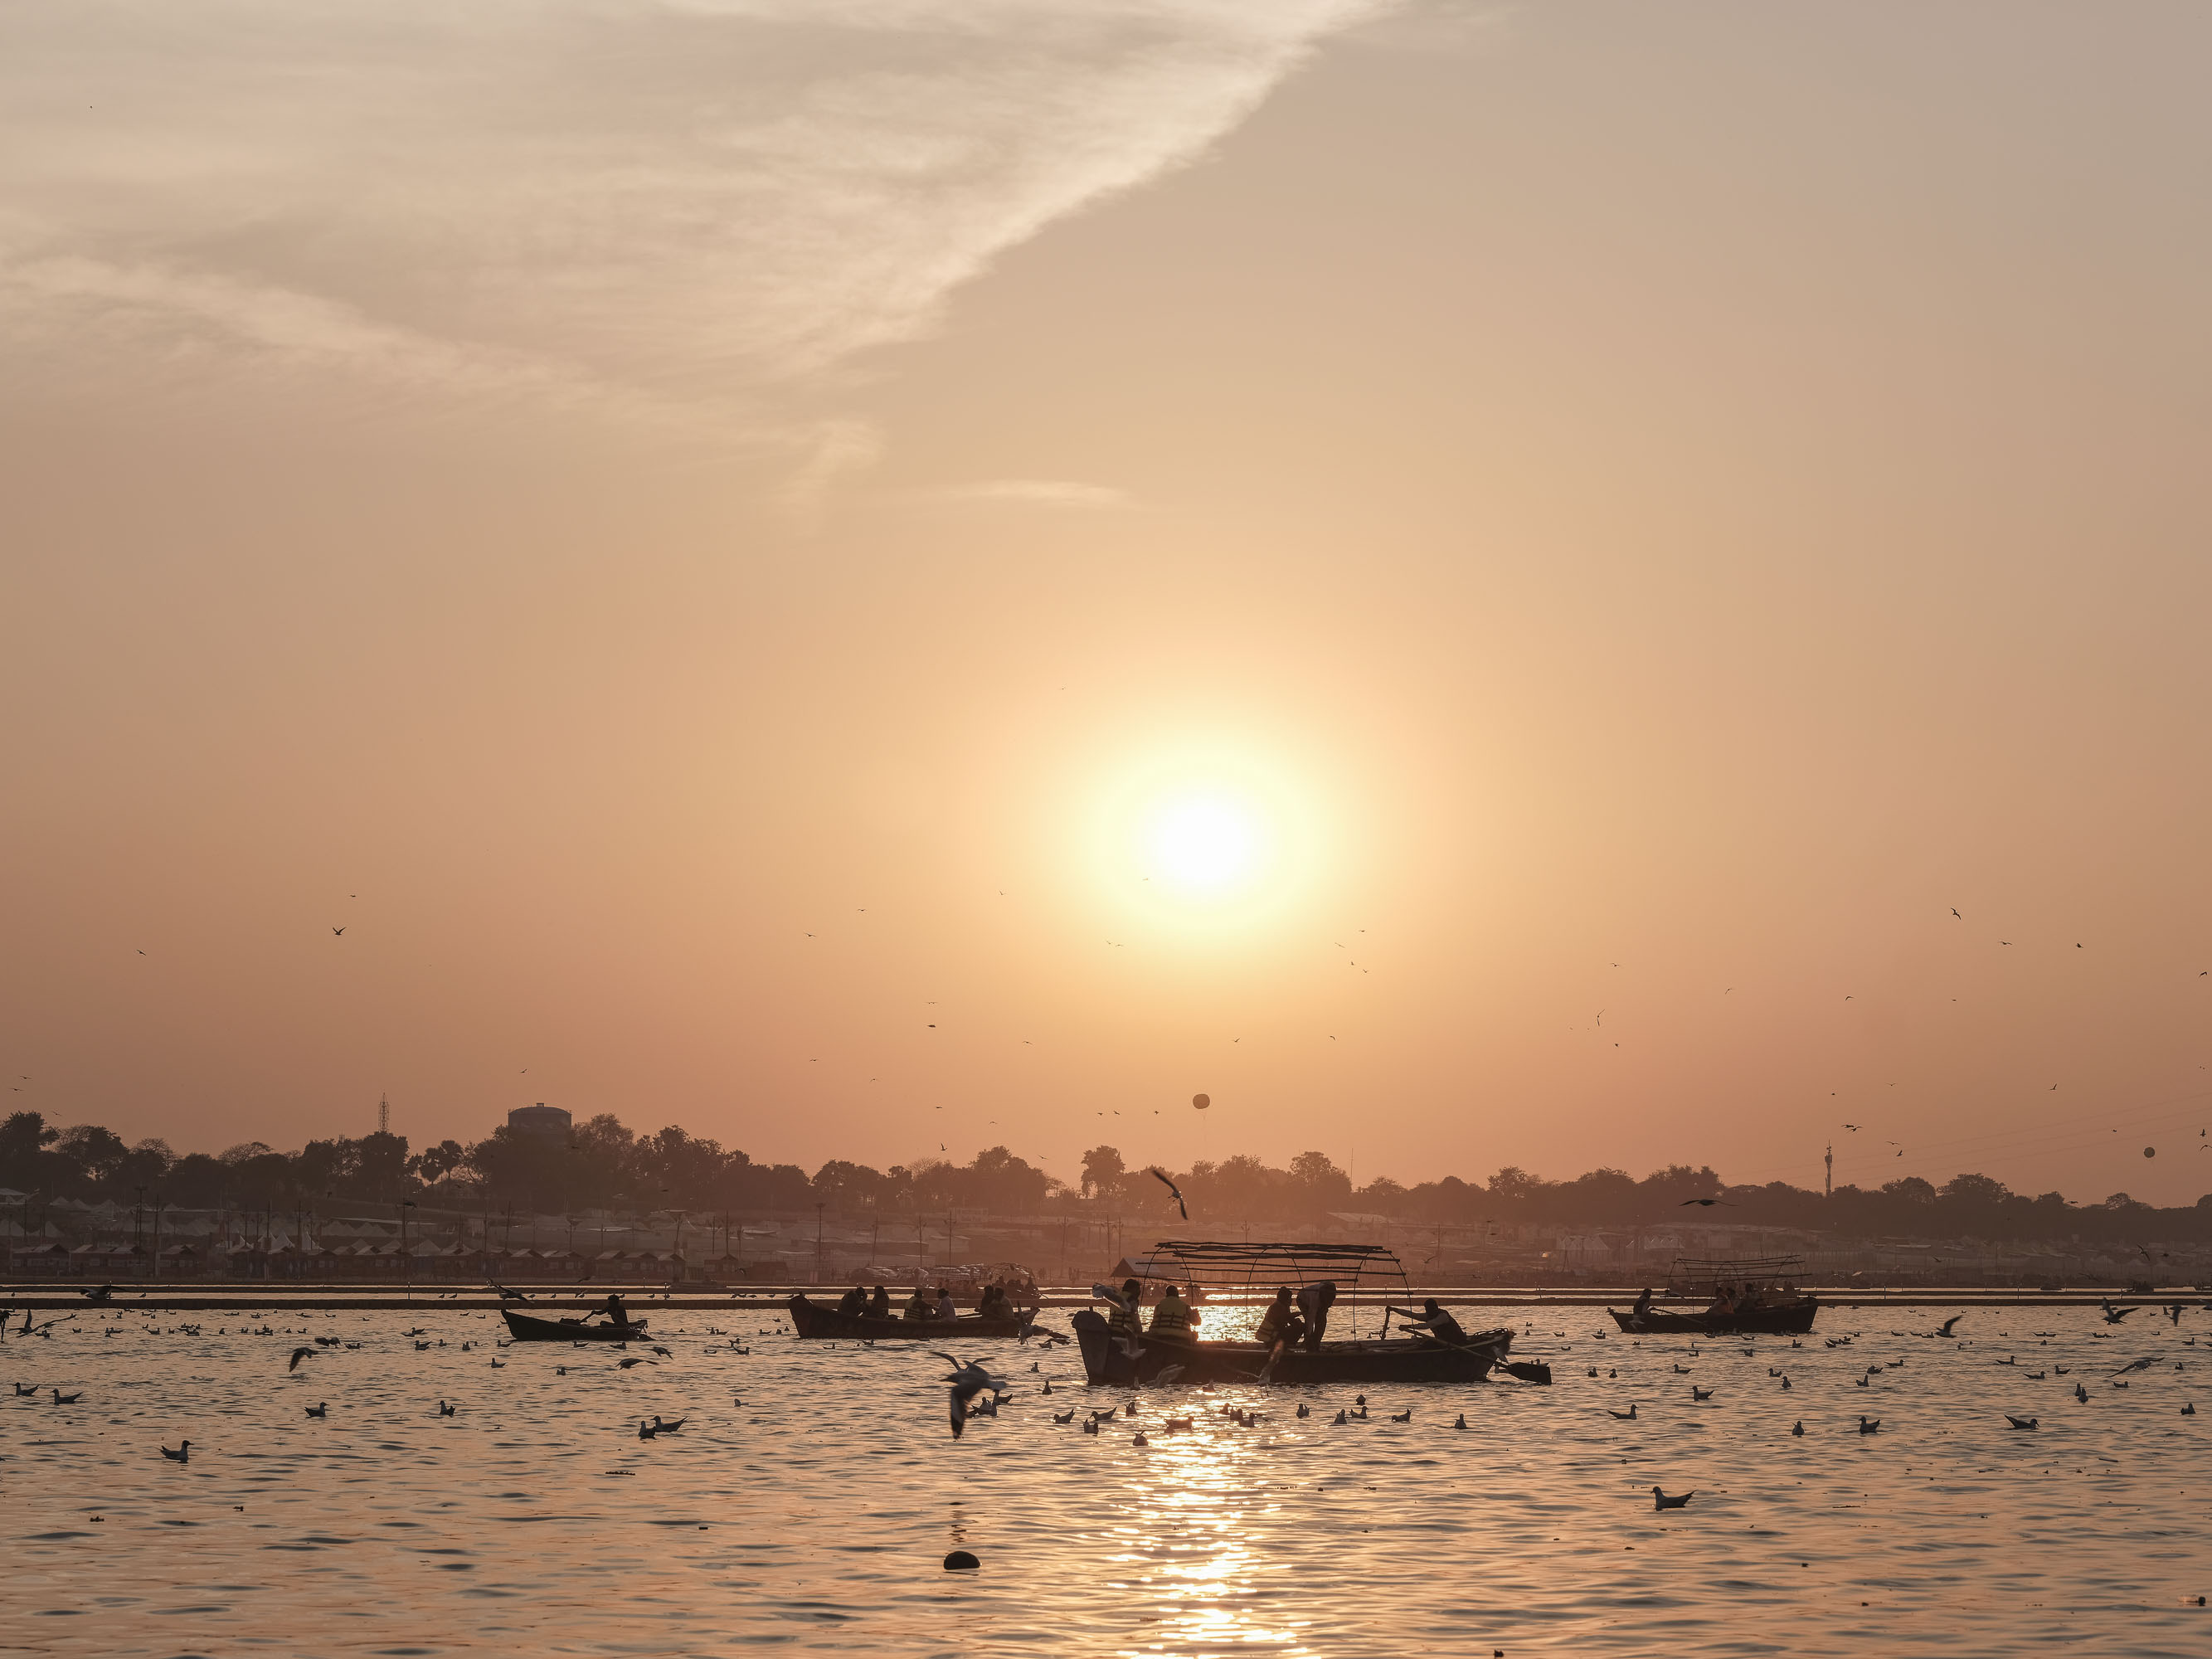 sunset boat pilgrims Kumbh mela 2019 India Allahabad Prayagraj Ardh hindu religious Festival event rivers photographer jose jeuland photography